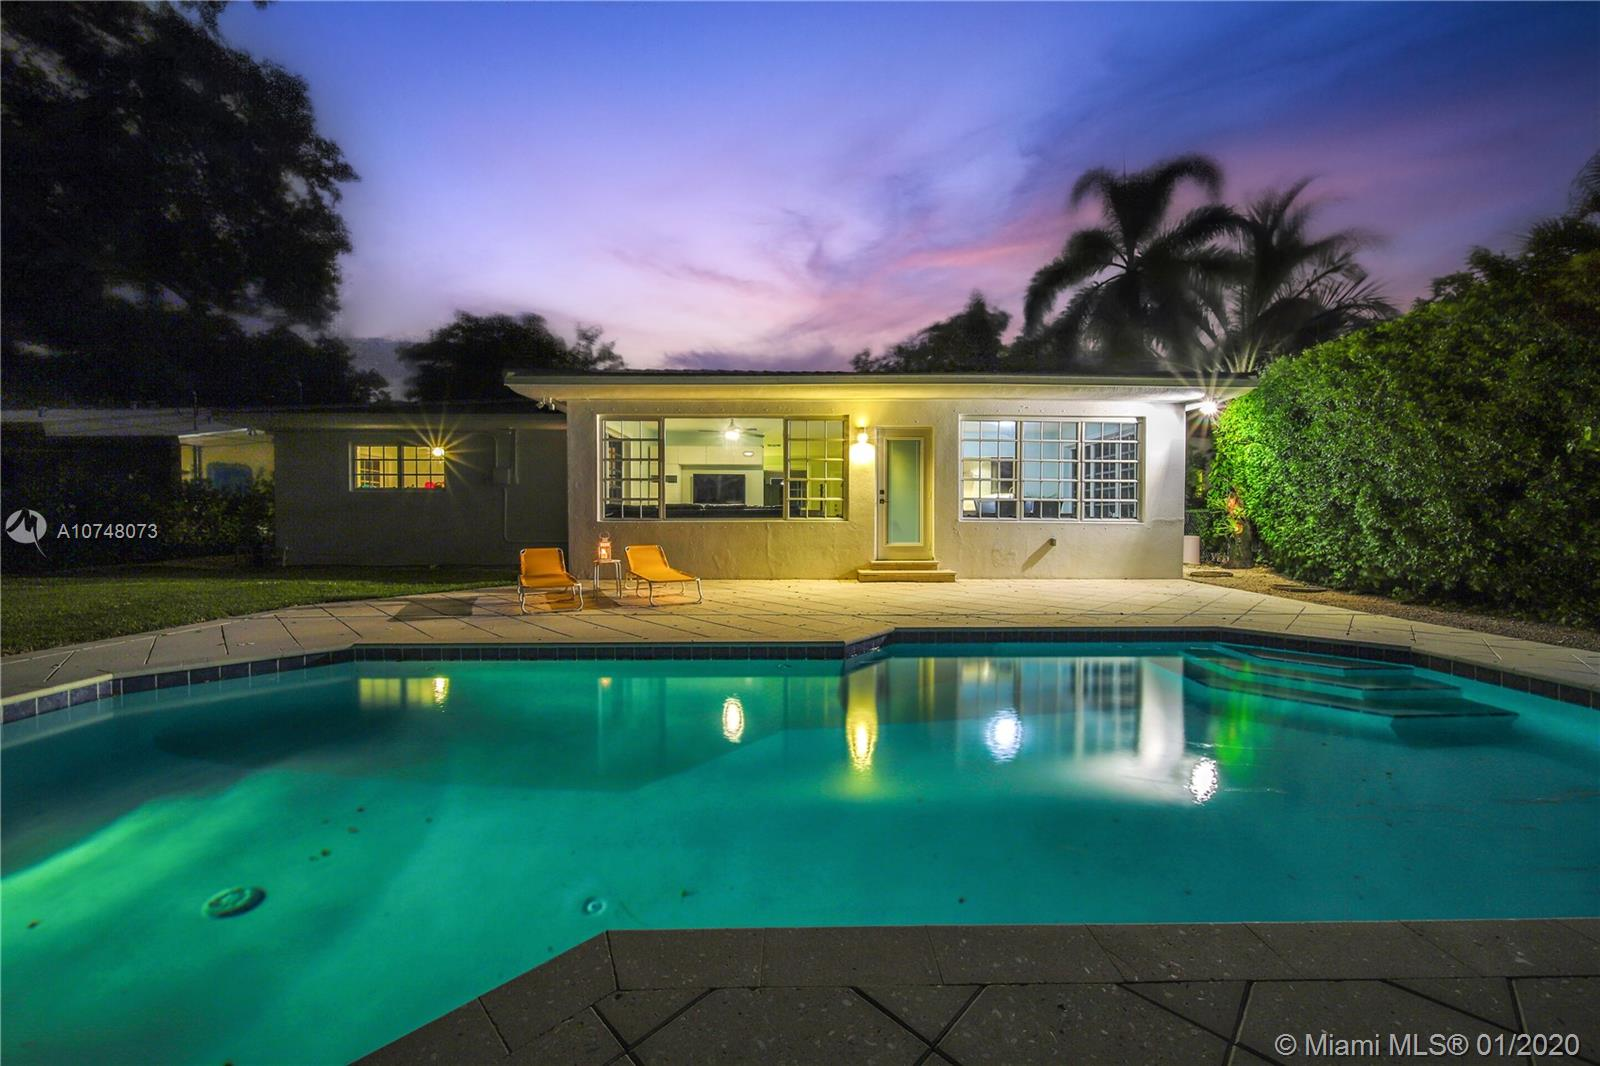 1163 NE 92nd St, Miami Shores, Florida 33138, 2 Bedrooms Bedrooms, ,2 BathroomsBathrooms,Residential,For Sale,1163 NE 92nd St,A10748073